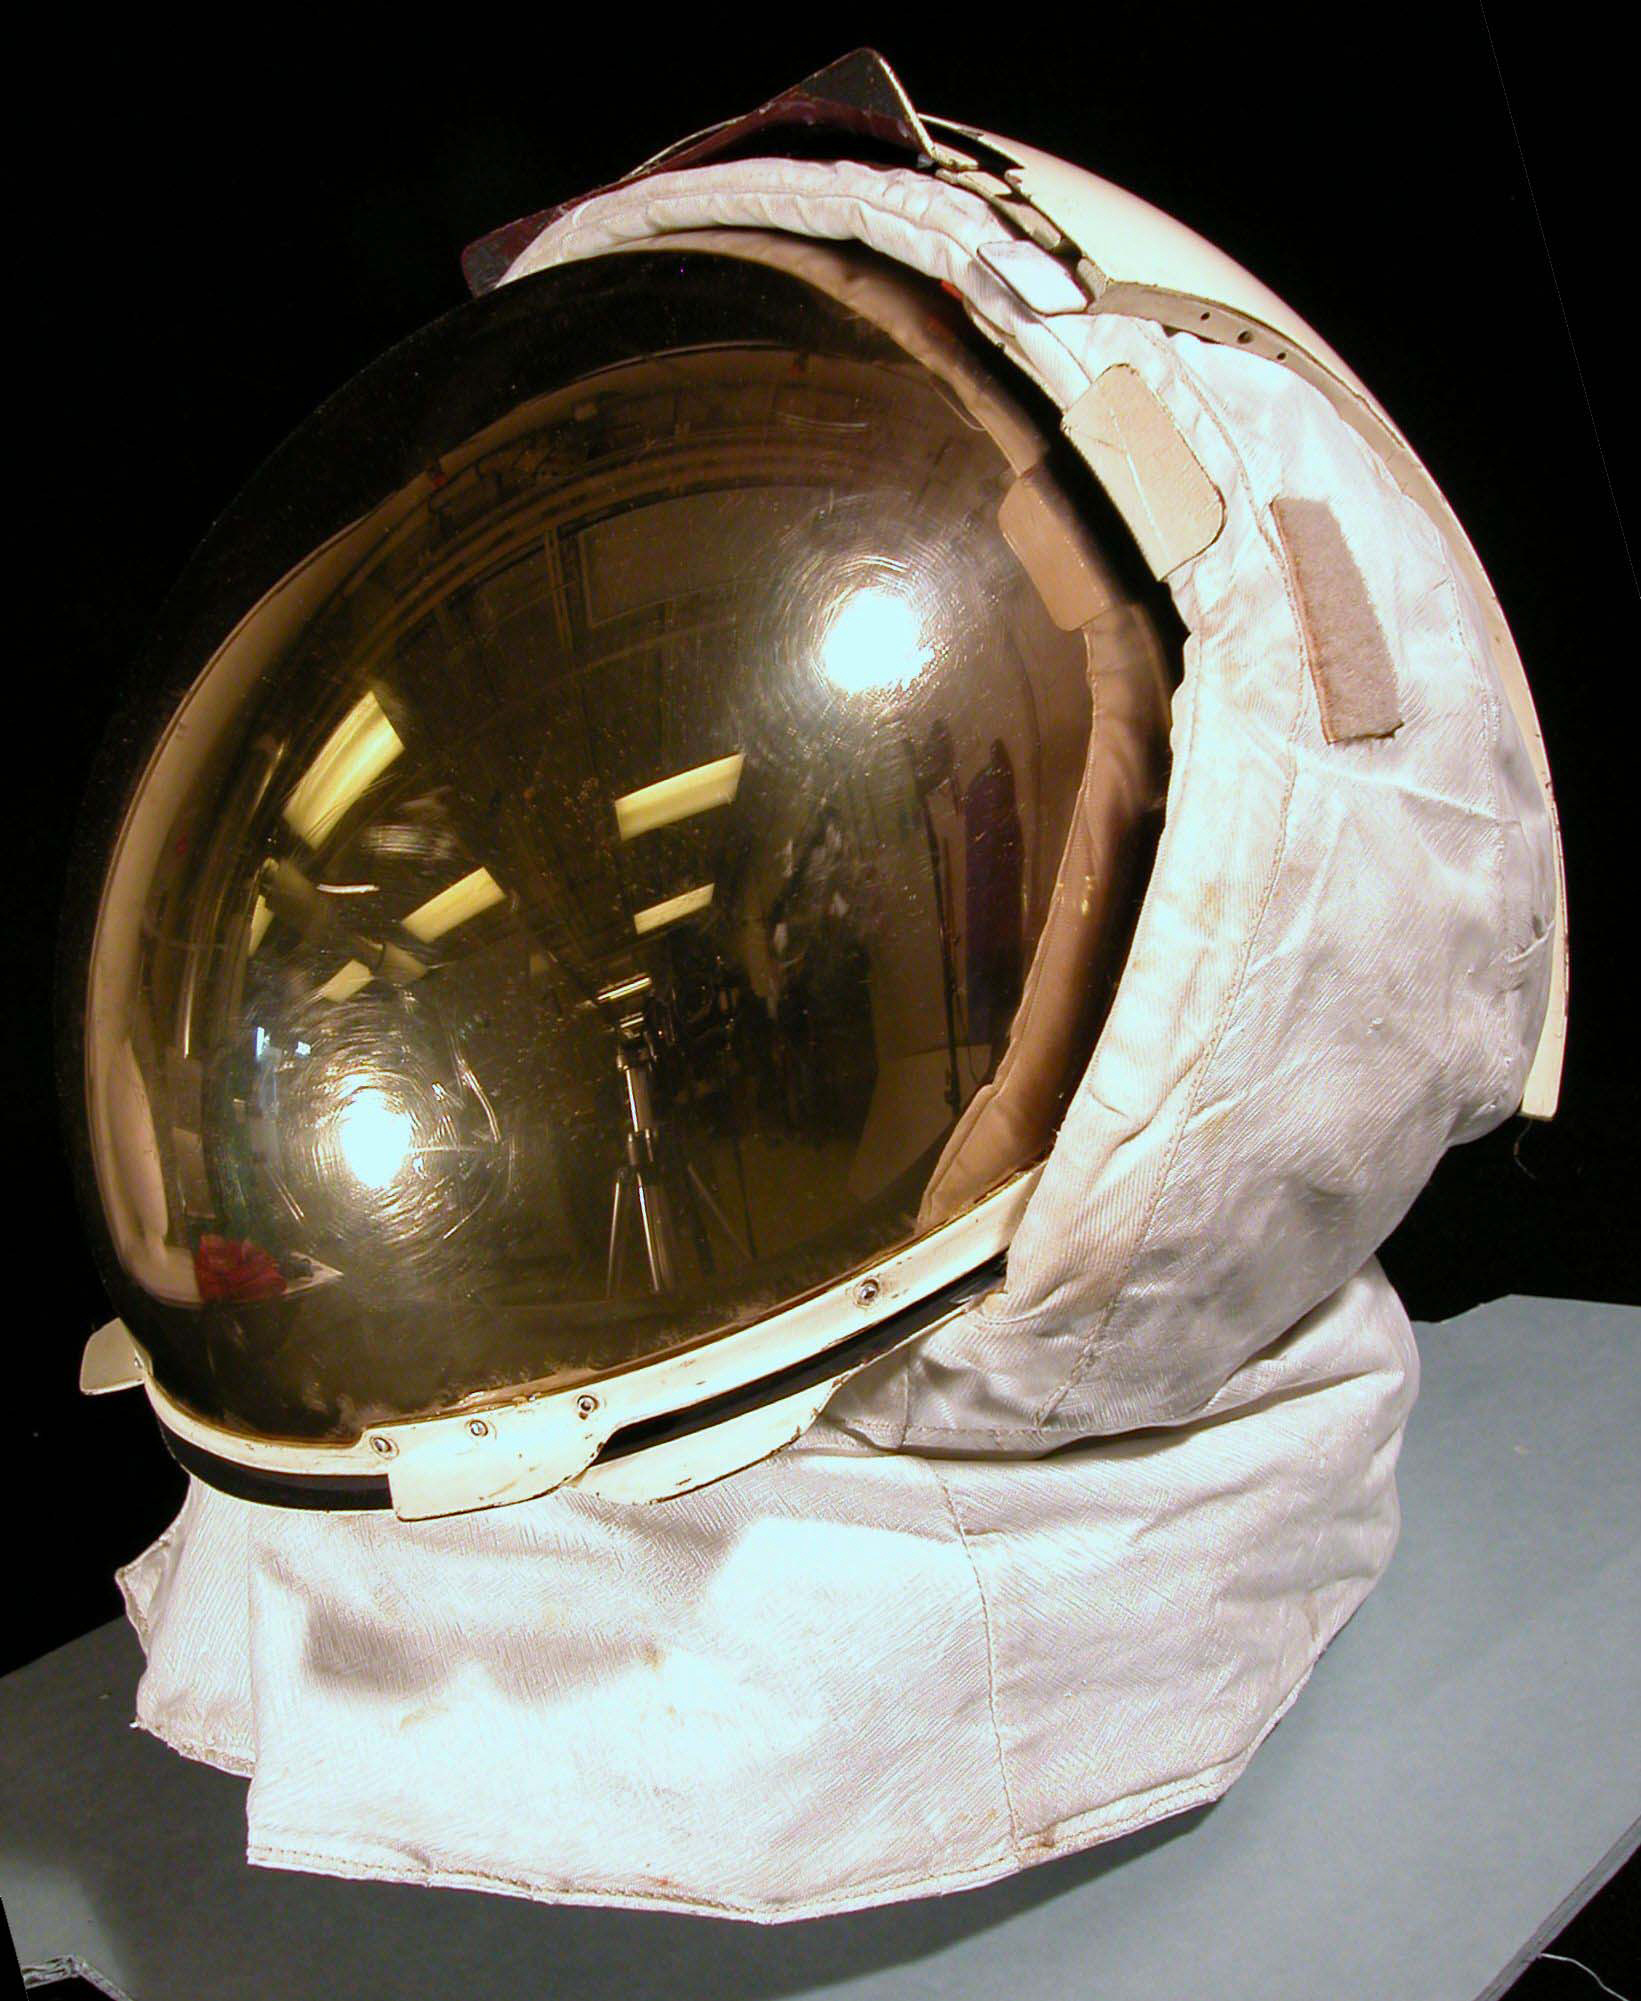 Astronaut Helmet From - Pics about space